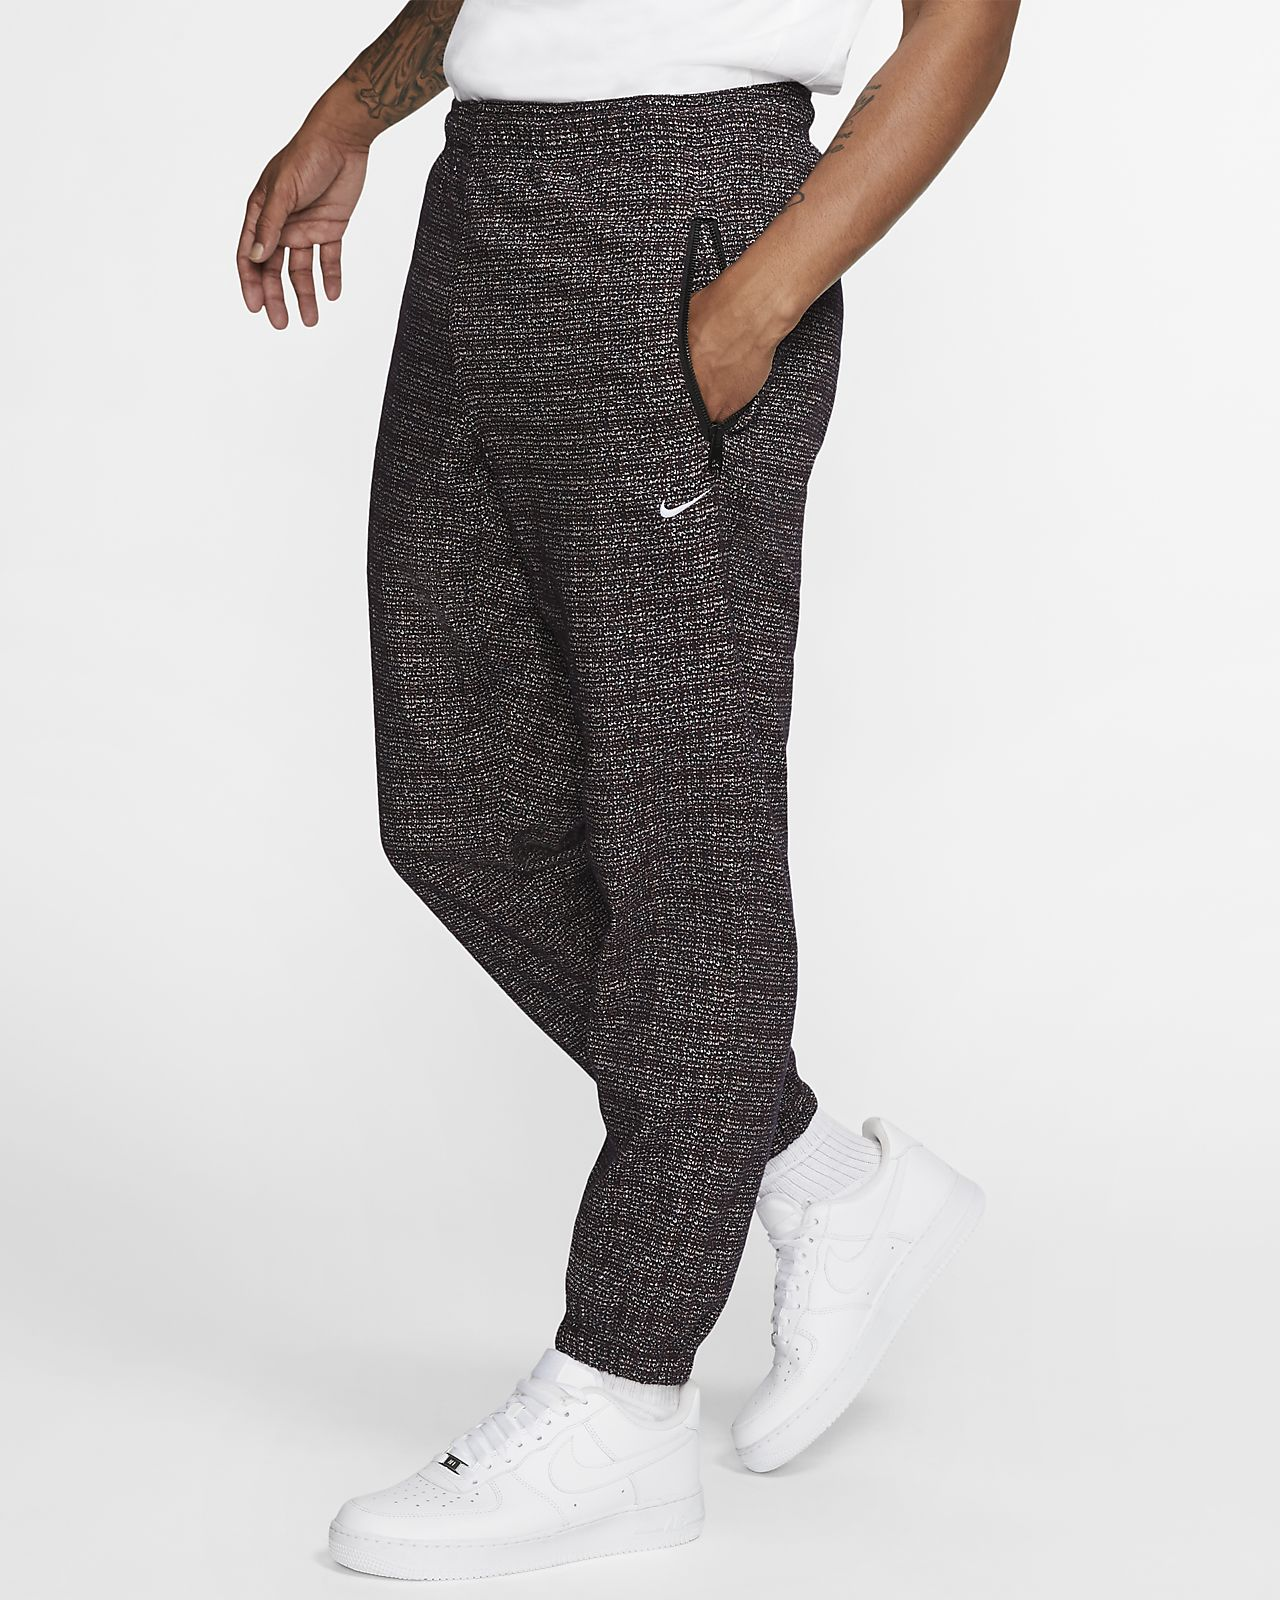 Nike Classic x Sport Men's Trousers